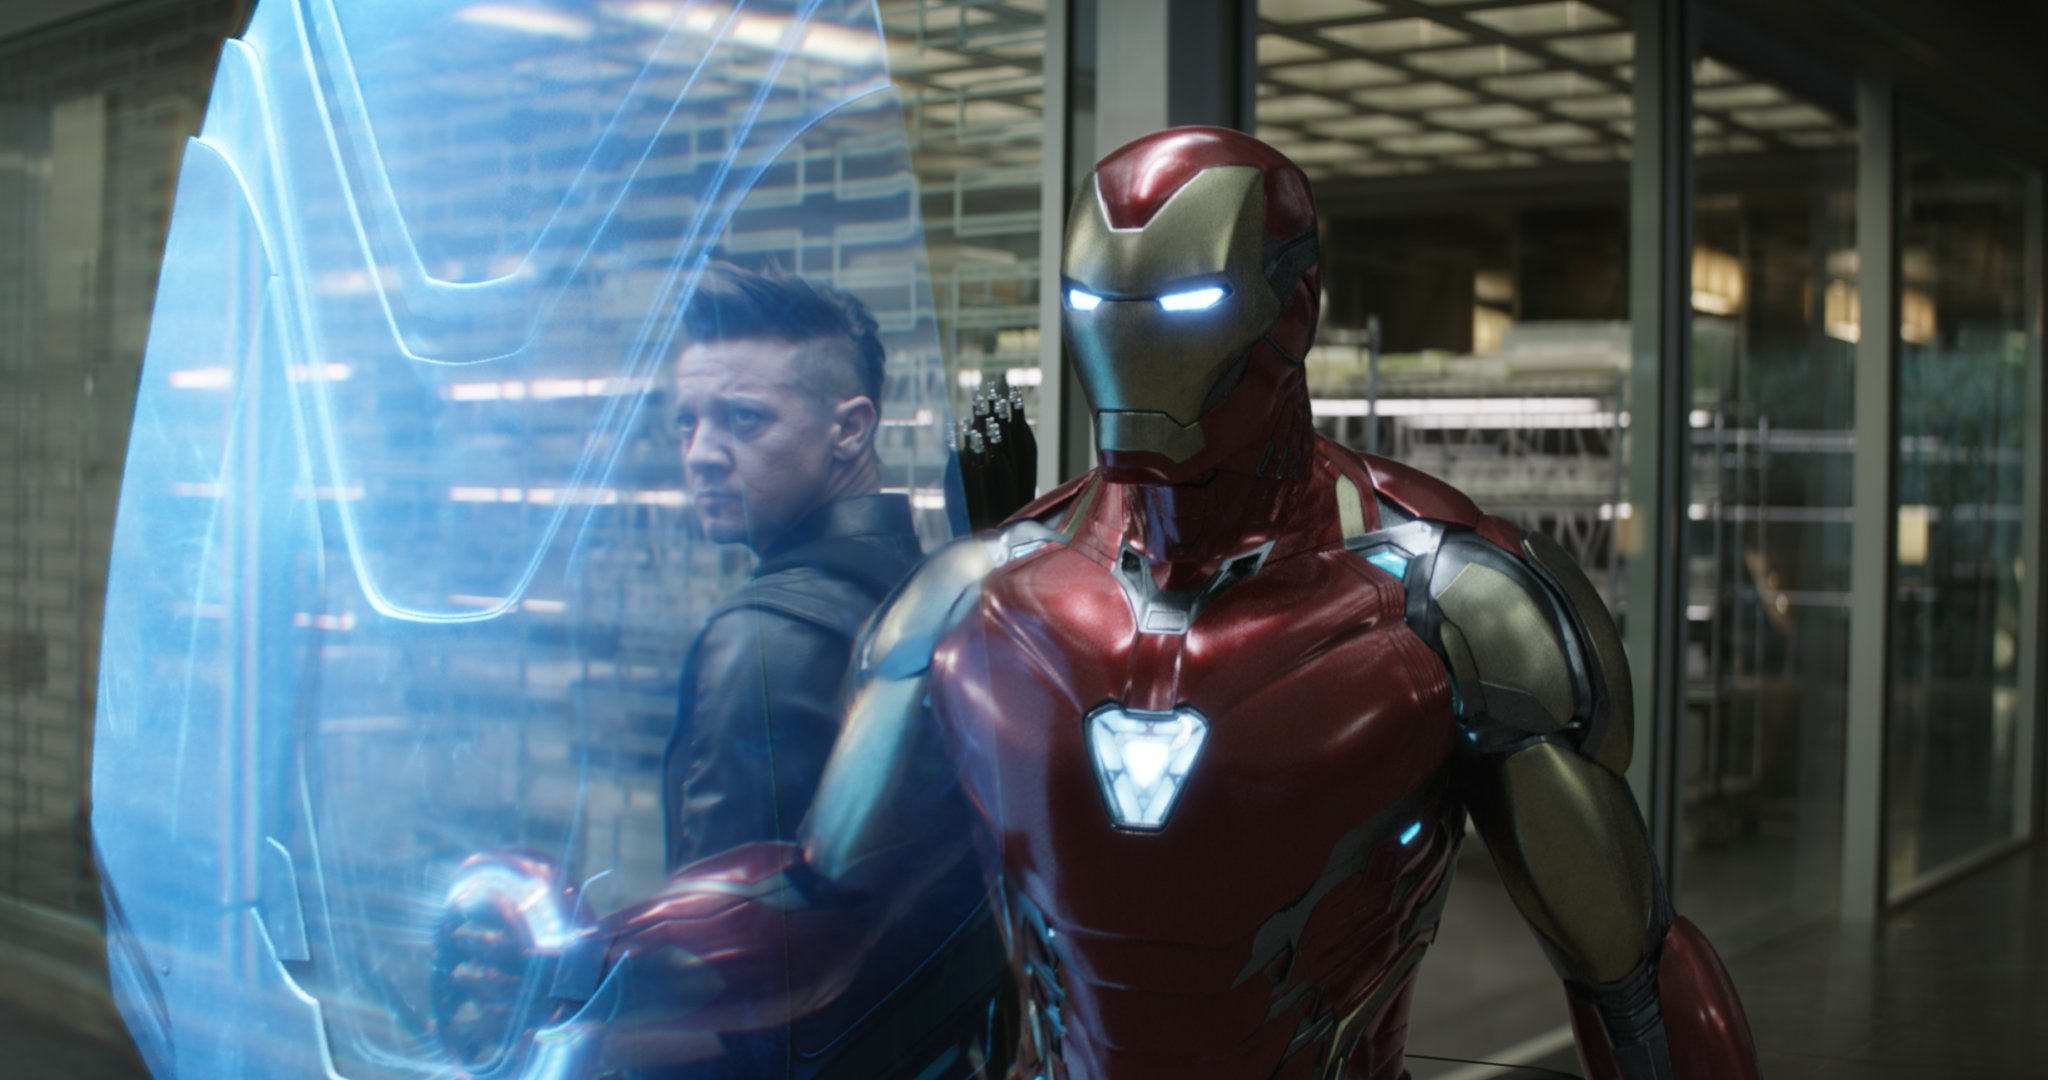 Photo du film Avengers: Endgame avec Hawkeye et Iron Man